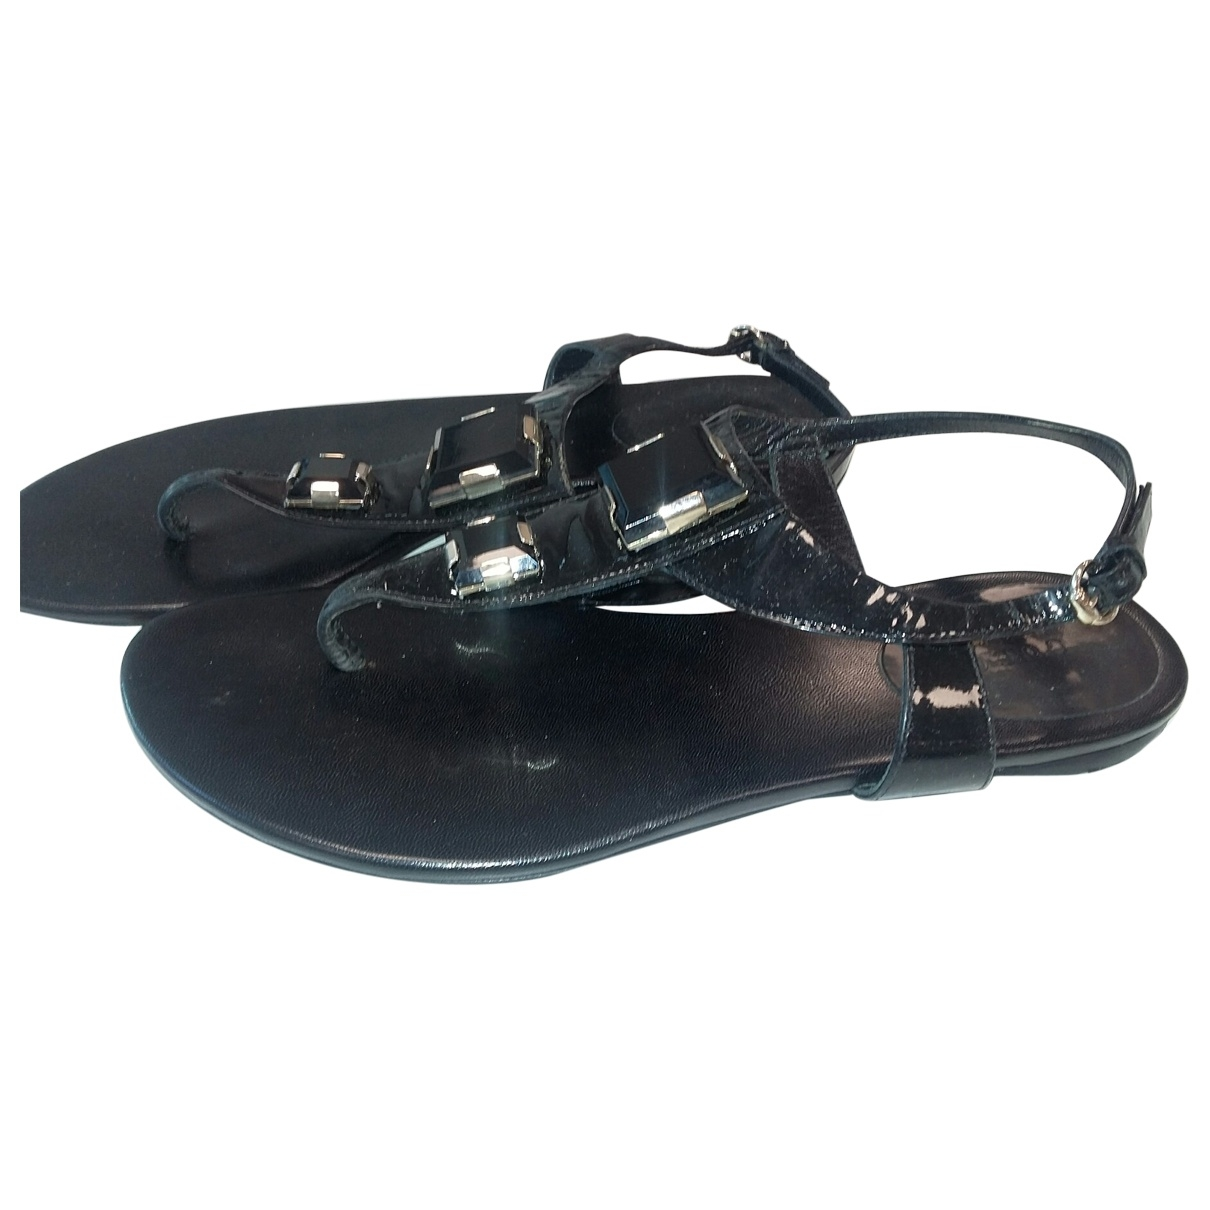 Gucci \N Black Patent leather Sandals for Women 37 EU